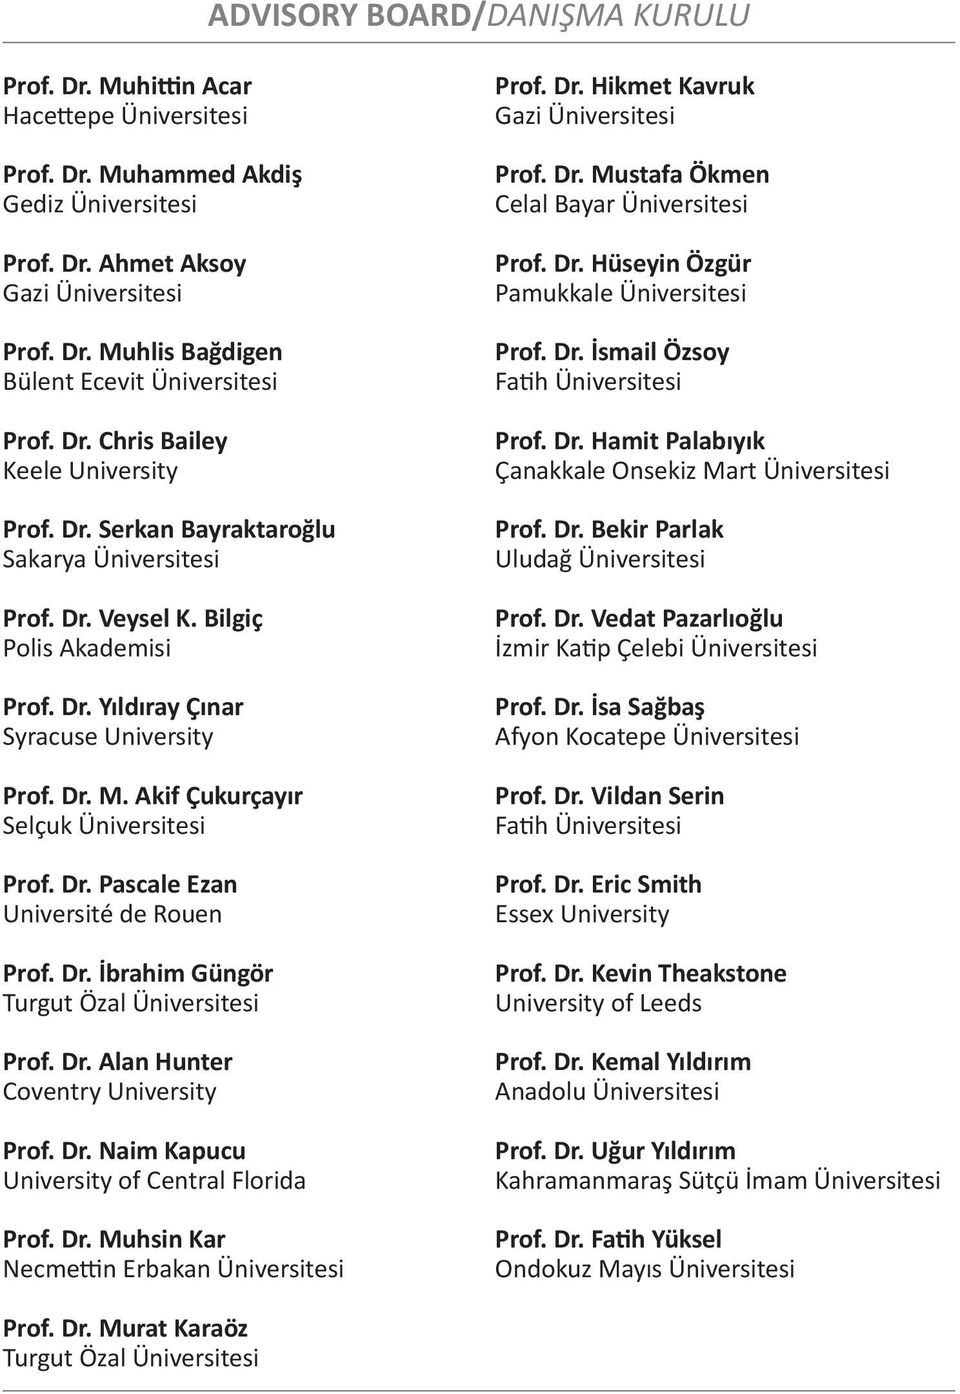 Akif Çukurçayır Selçuk Üniversitesi Prof. Dr. Pascale Ezan Université de Rouen Prof. Dr. İbrahim Güngör Turgut Özal Üniversitesi Prof. Dr. Alan Hunter Coventry University Prof. Dr. Naim Kapucu University of Central Florida Prof.